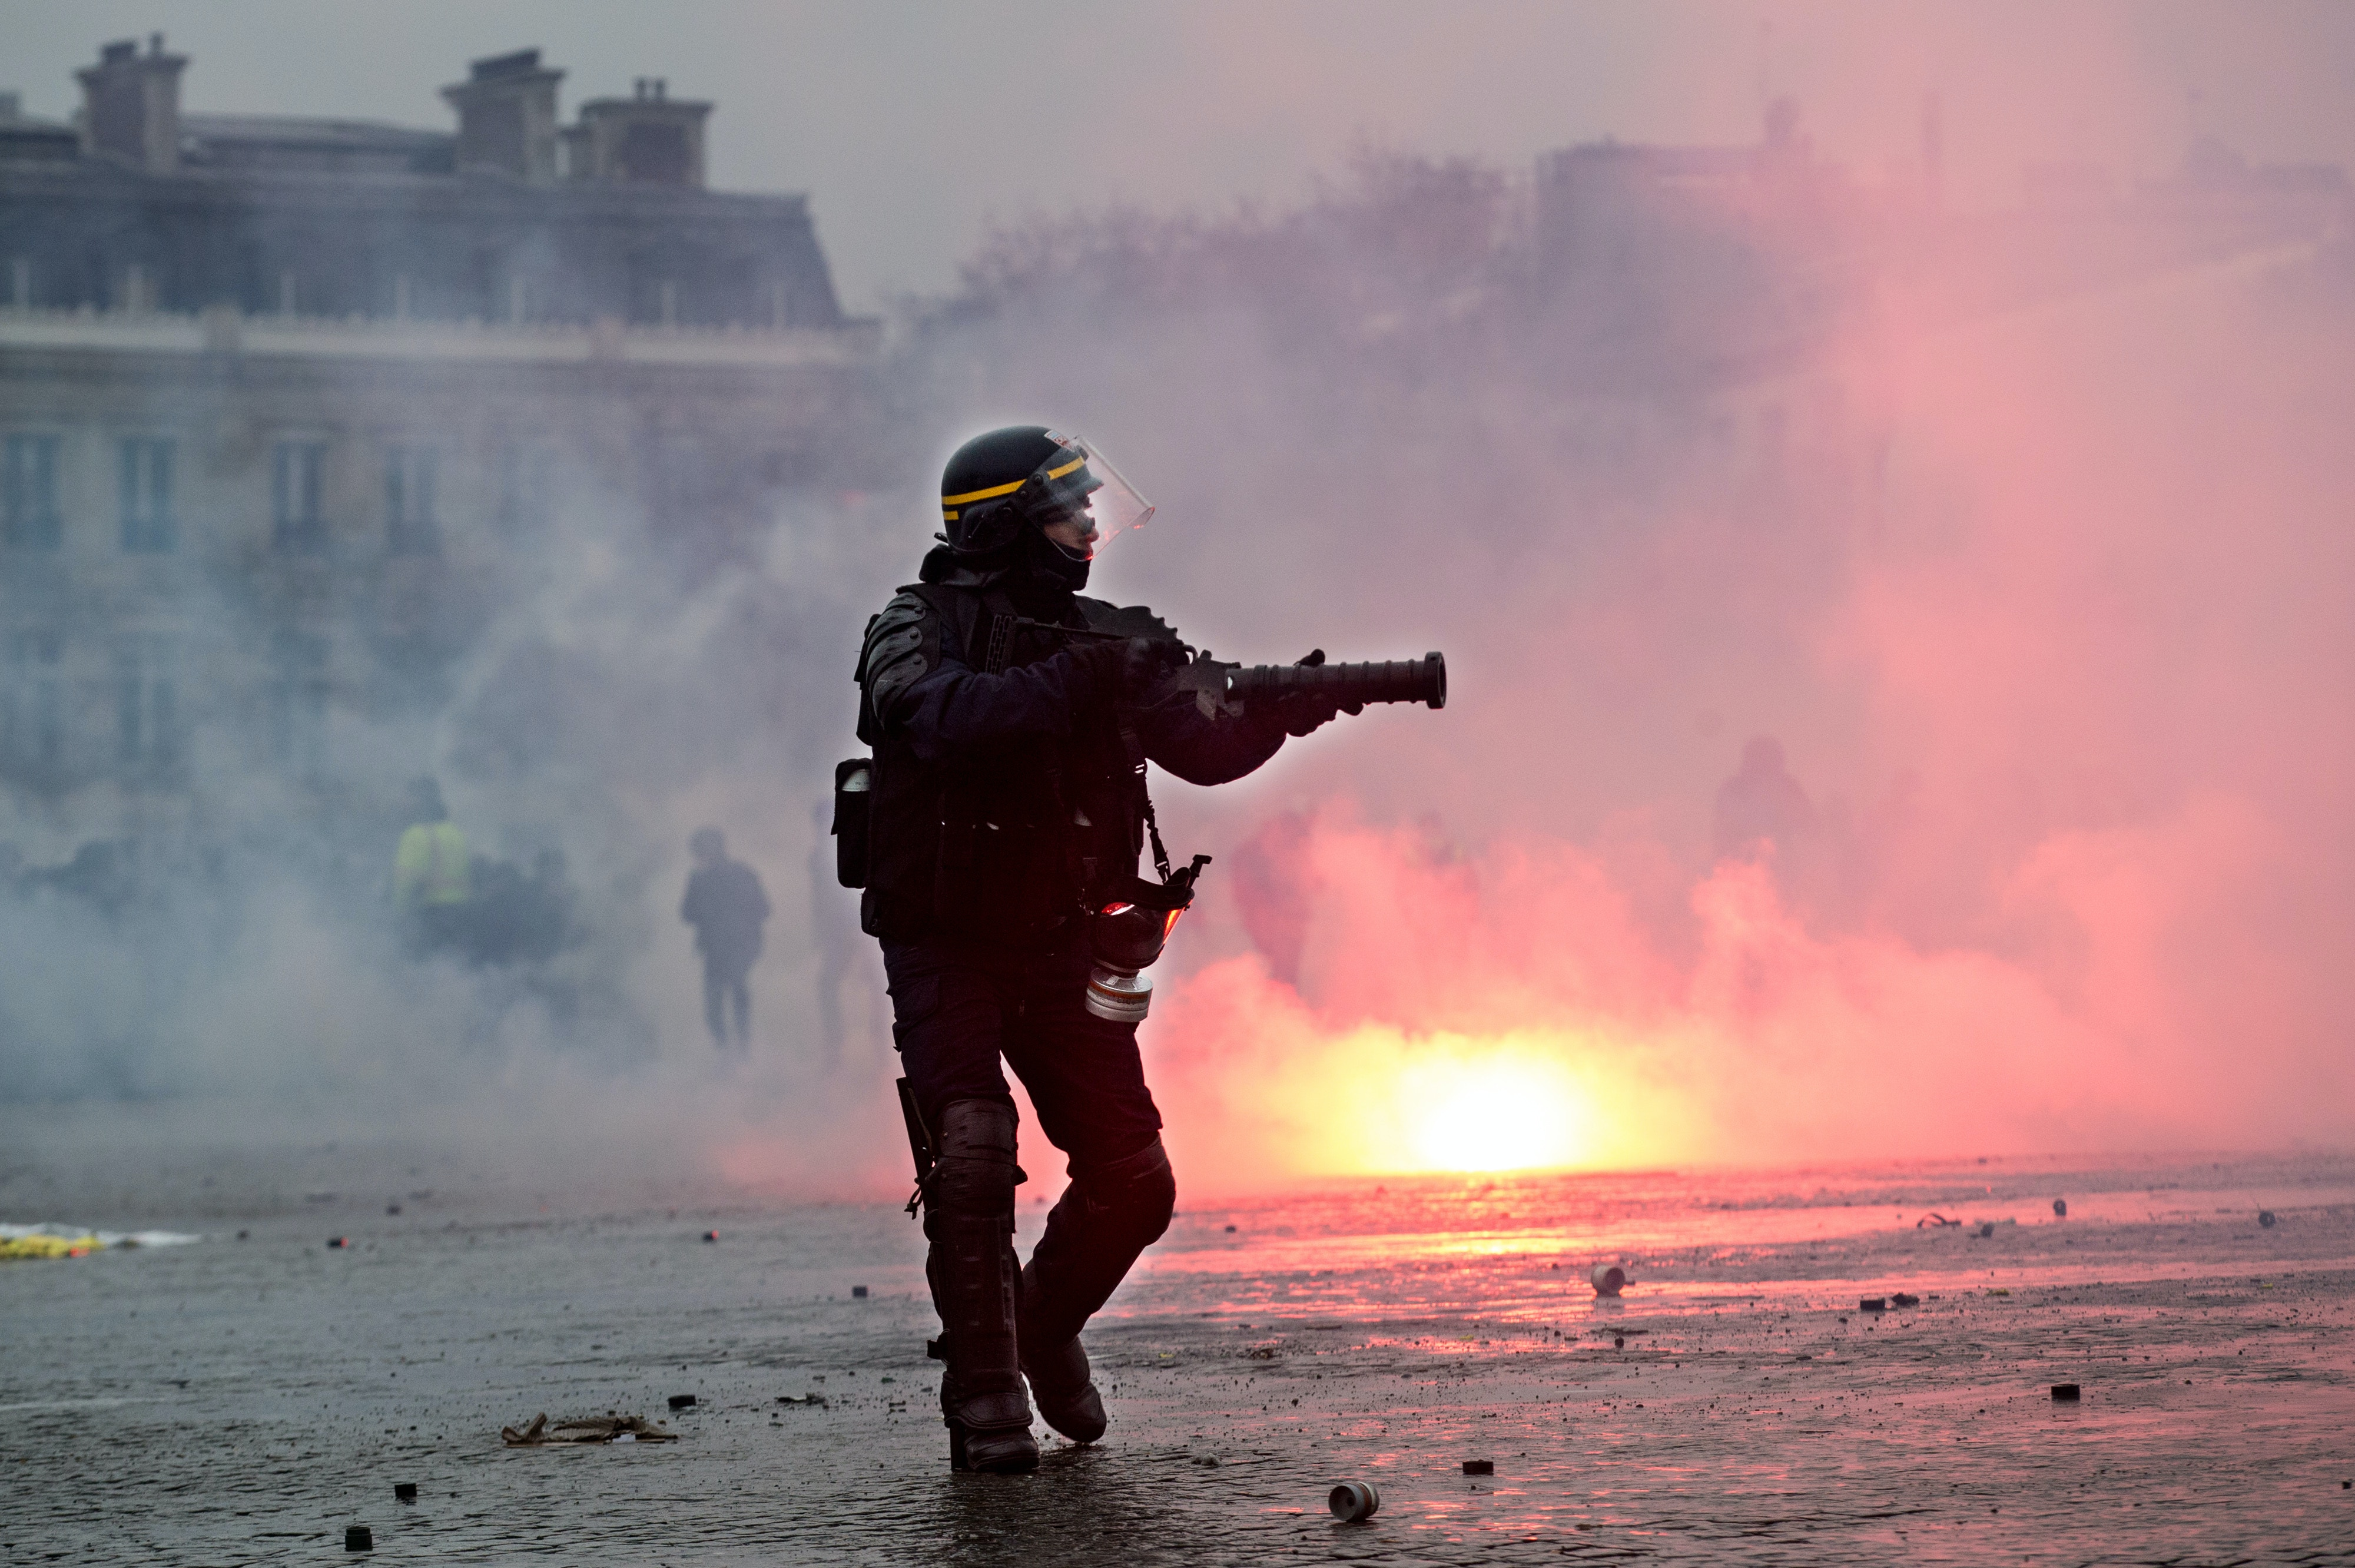 A riot police officer fires tear gas canisters at Gilet Jaune protesters in Paris, France, January 12, 2018. Joe Penney for The Intercept